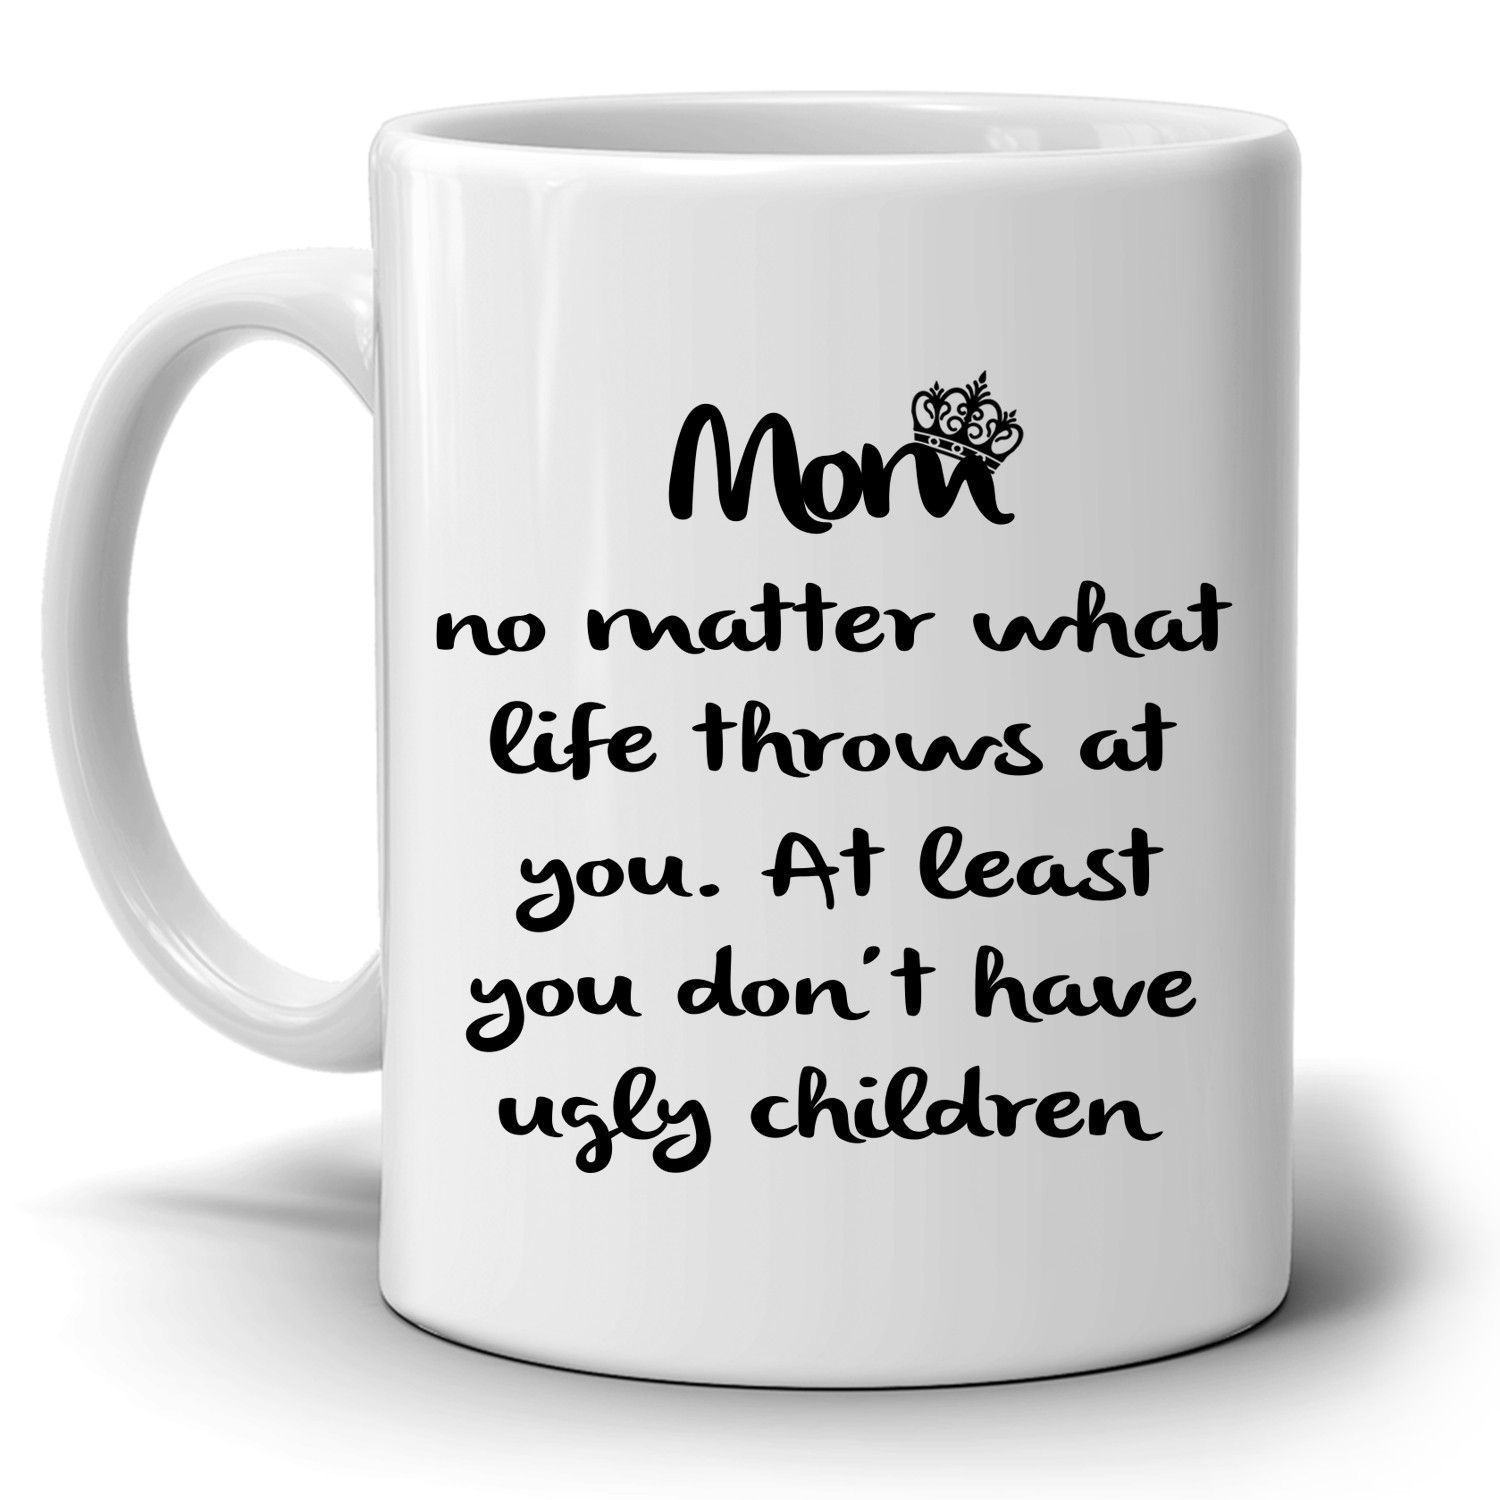 Funny mother daughter gifts coffee mug unique presents